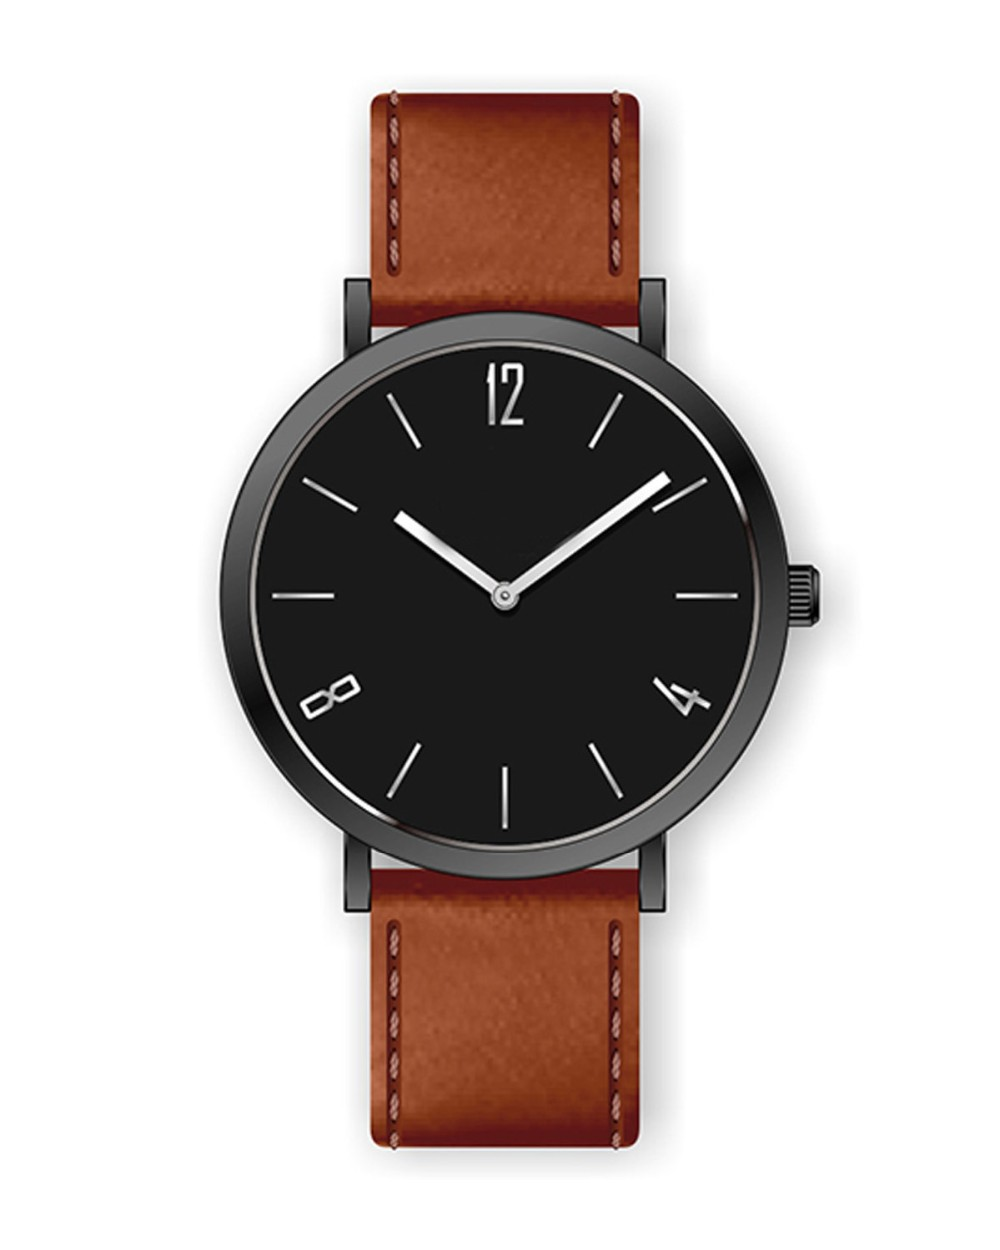 European stylish designed simple leather watch with your own logo on watch face